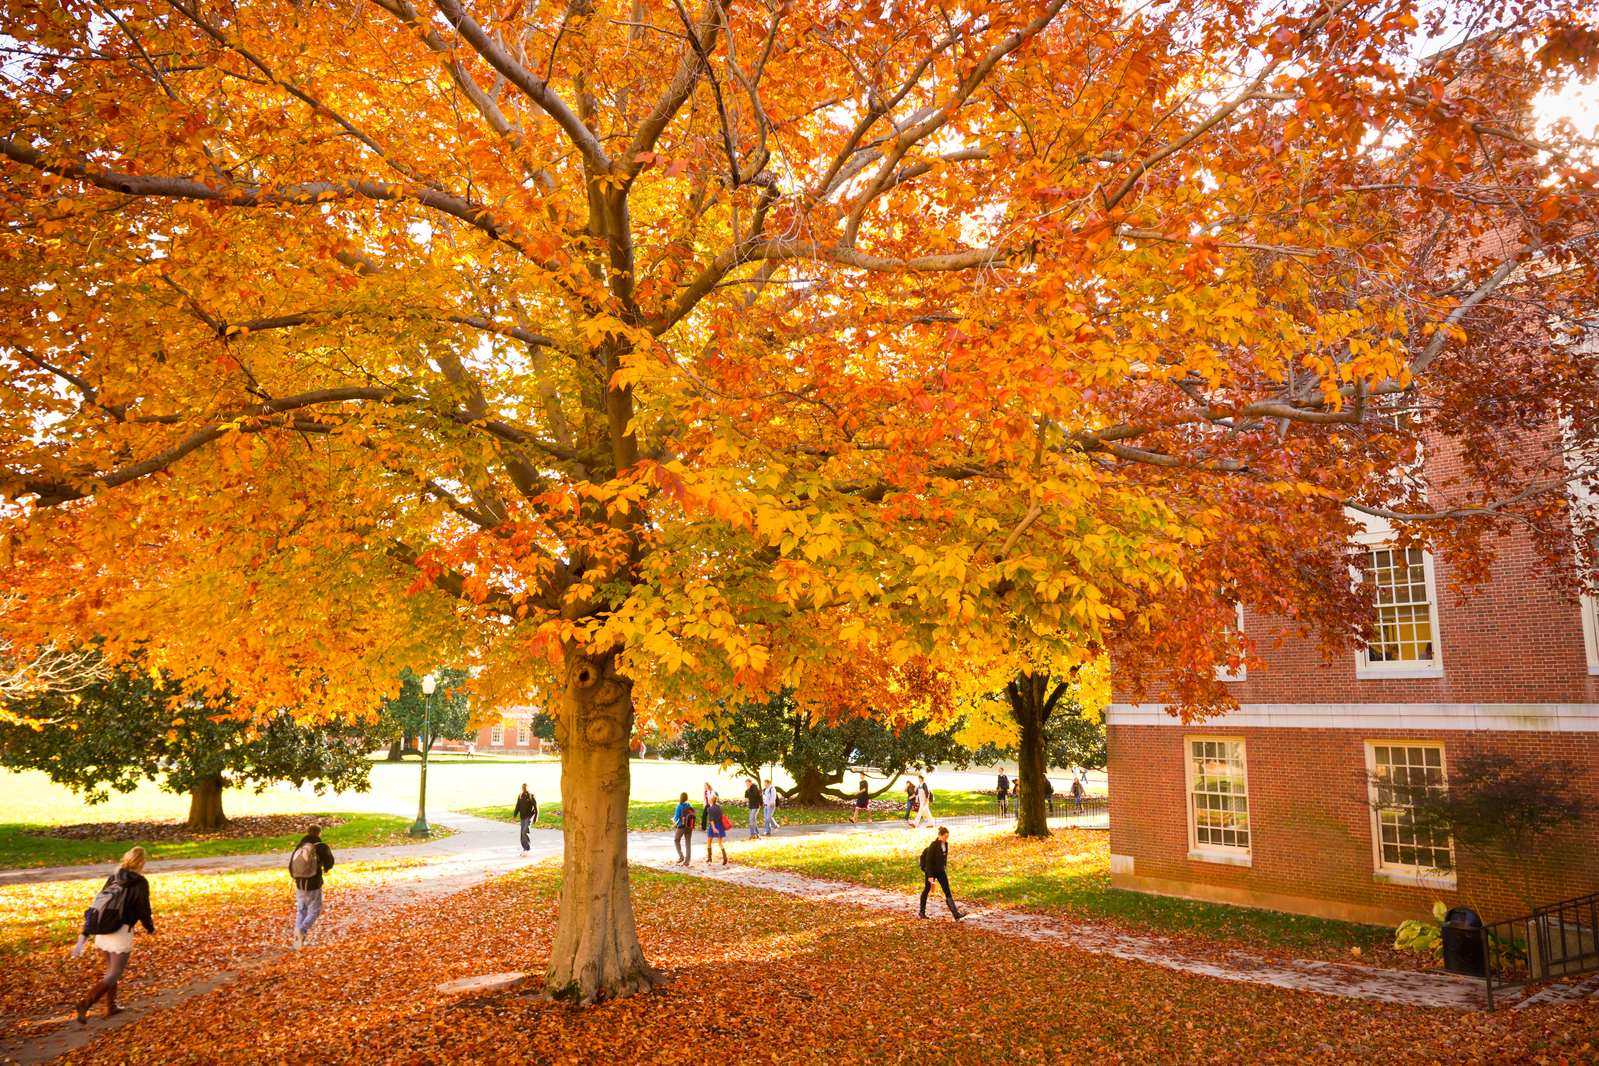 Parents & Families | Preview of the Fall Foliage